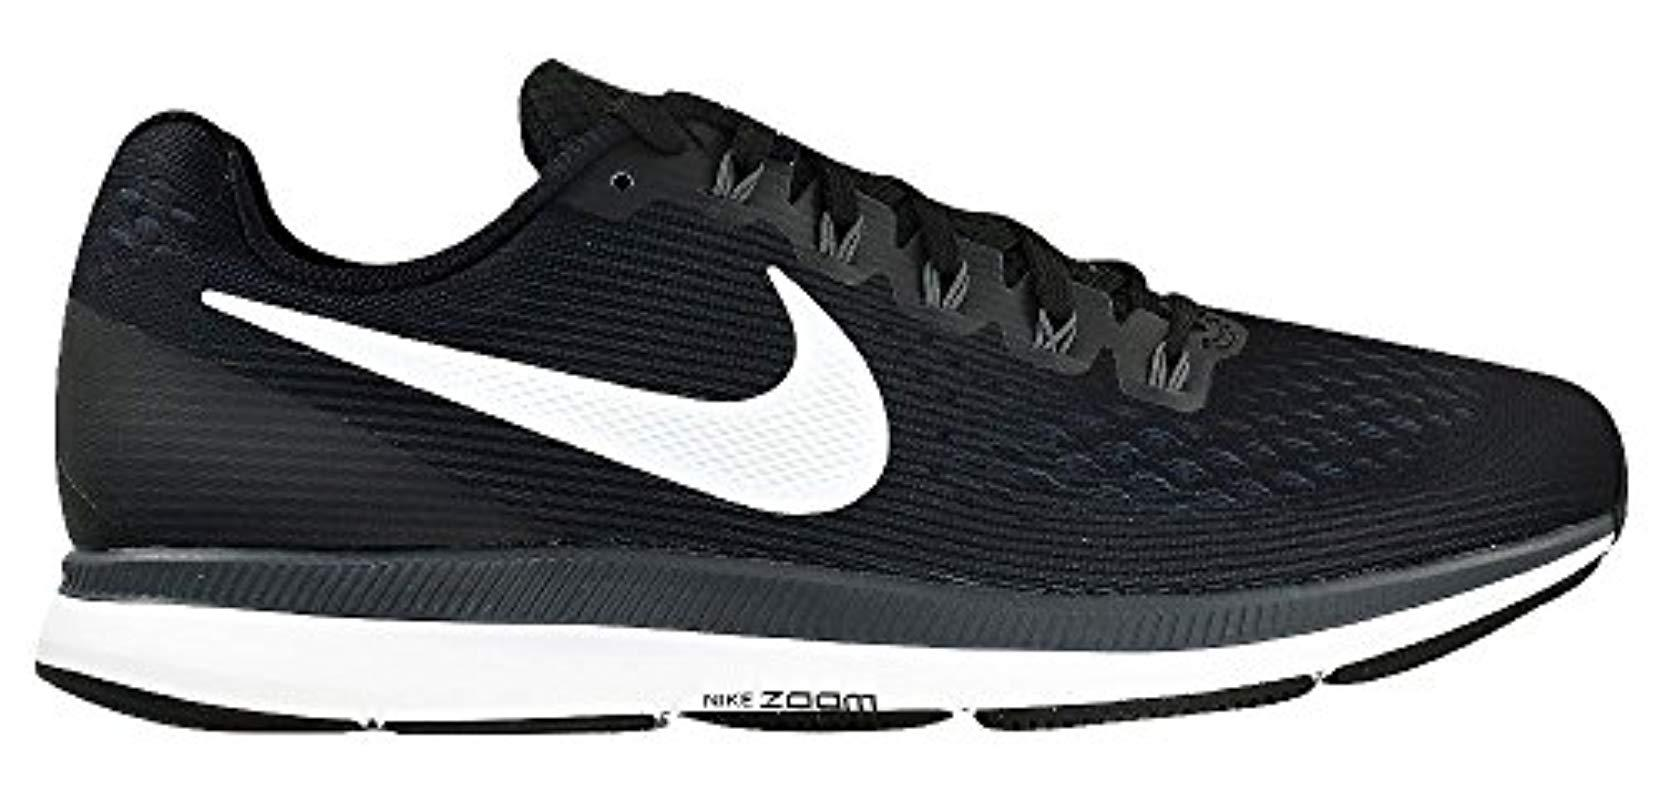 3ba8e3bd8f nike-Black-White-Dark-Grey-001-Air-Zoom-Pegasus-34-Competition-Running-Shoes .jpeg